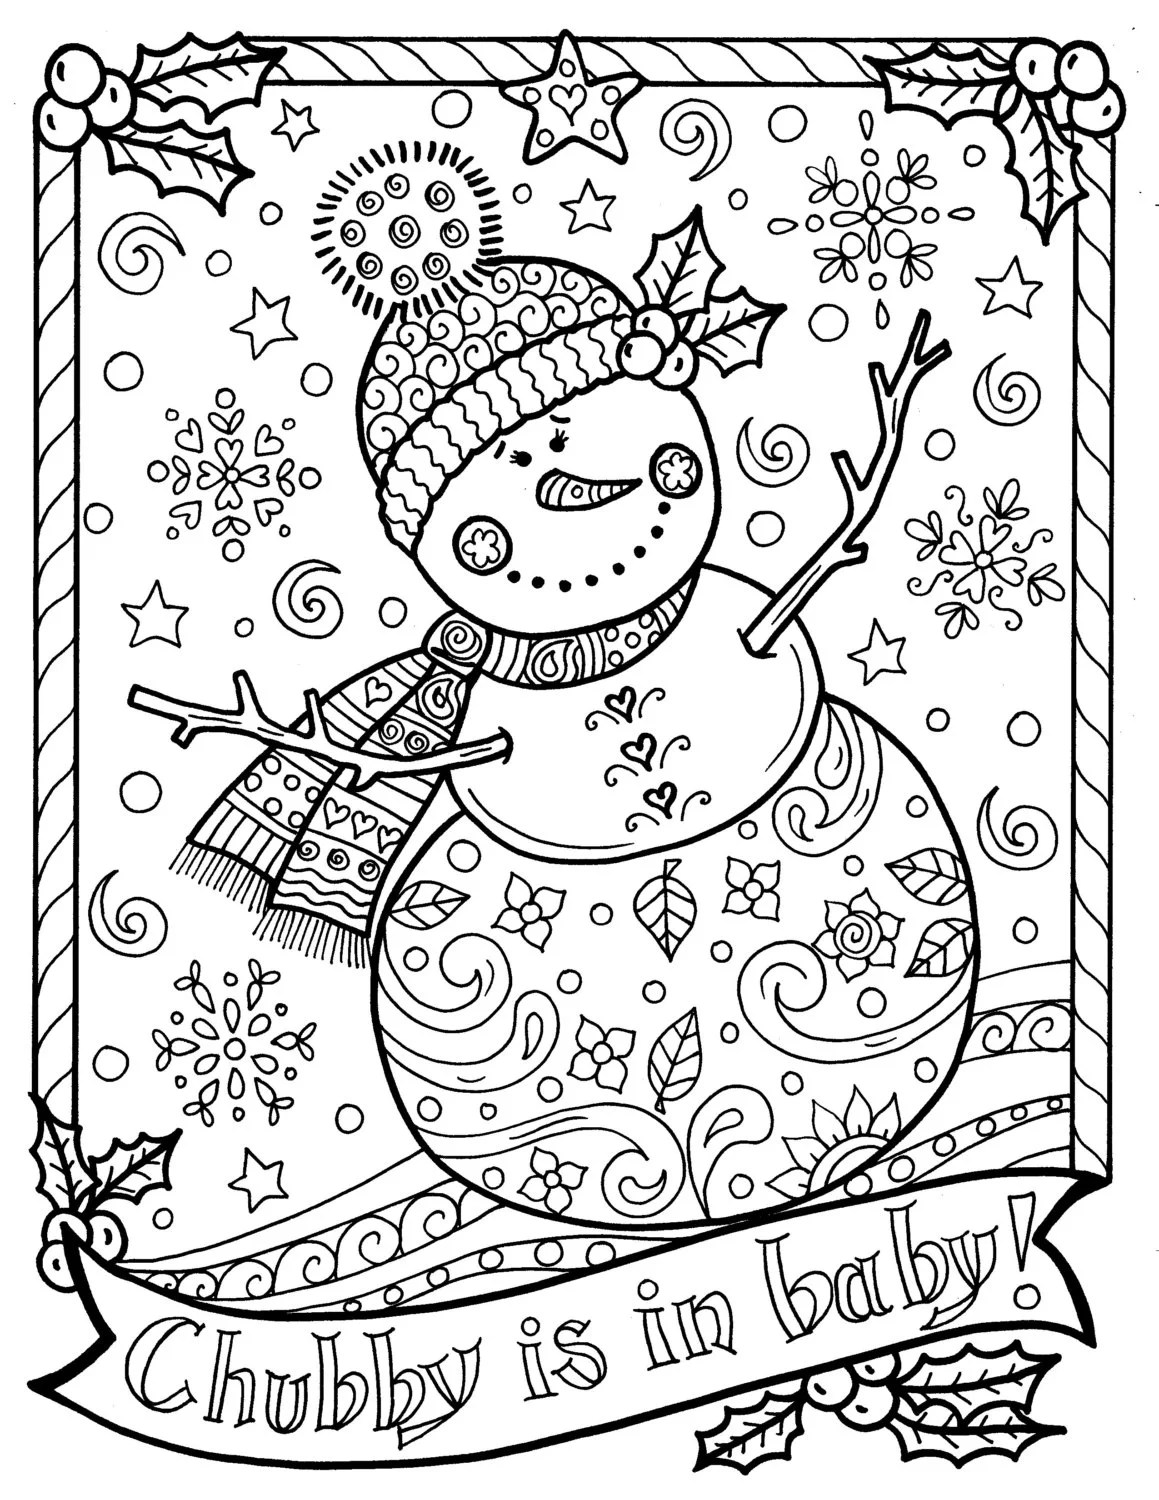 Snowman Coloring Page Chubby Christmas Adult Color